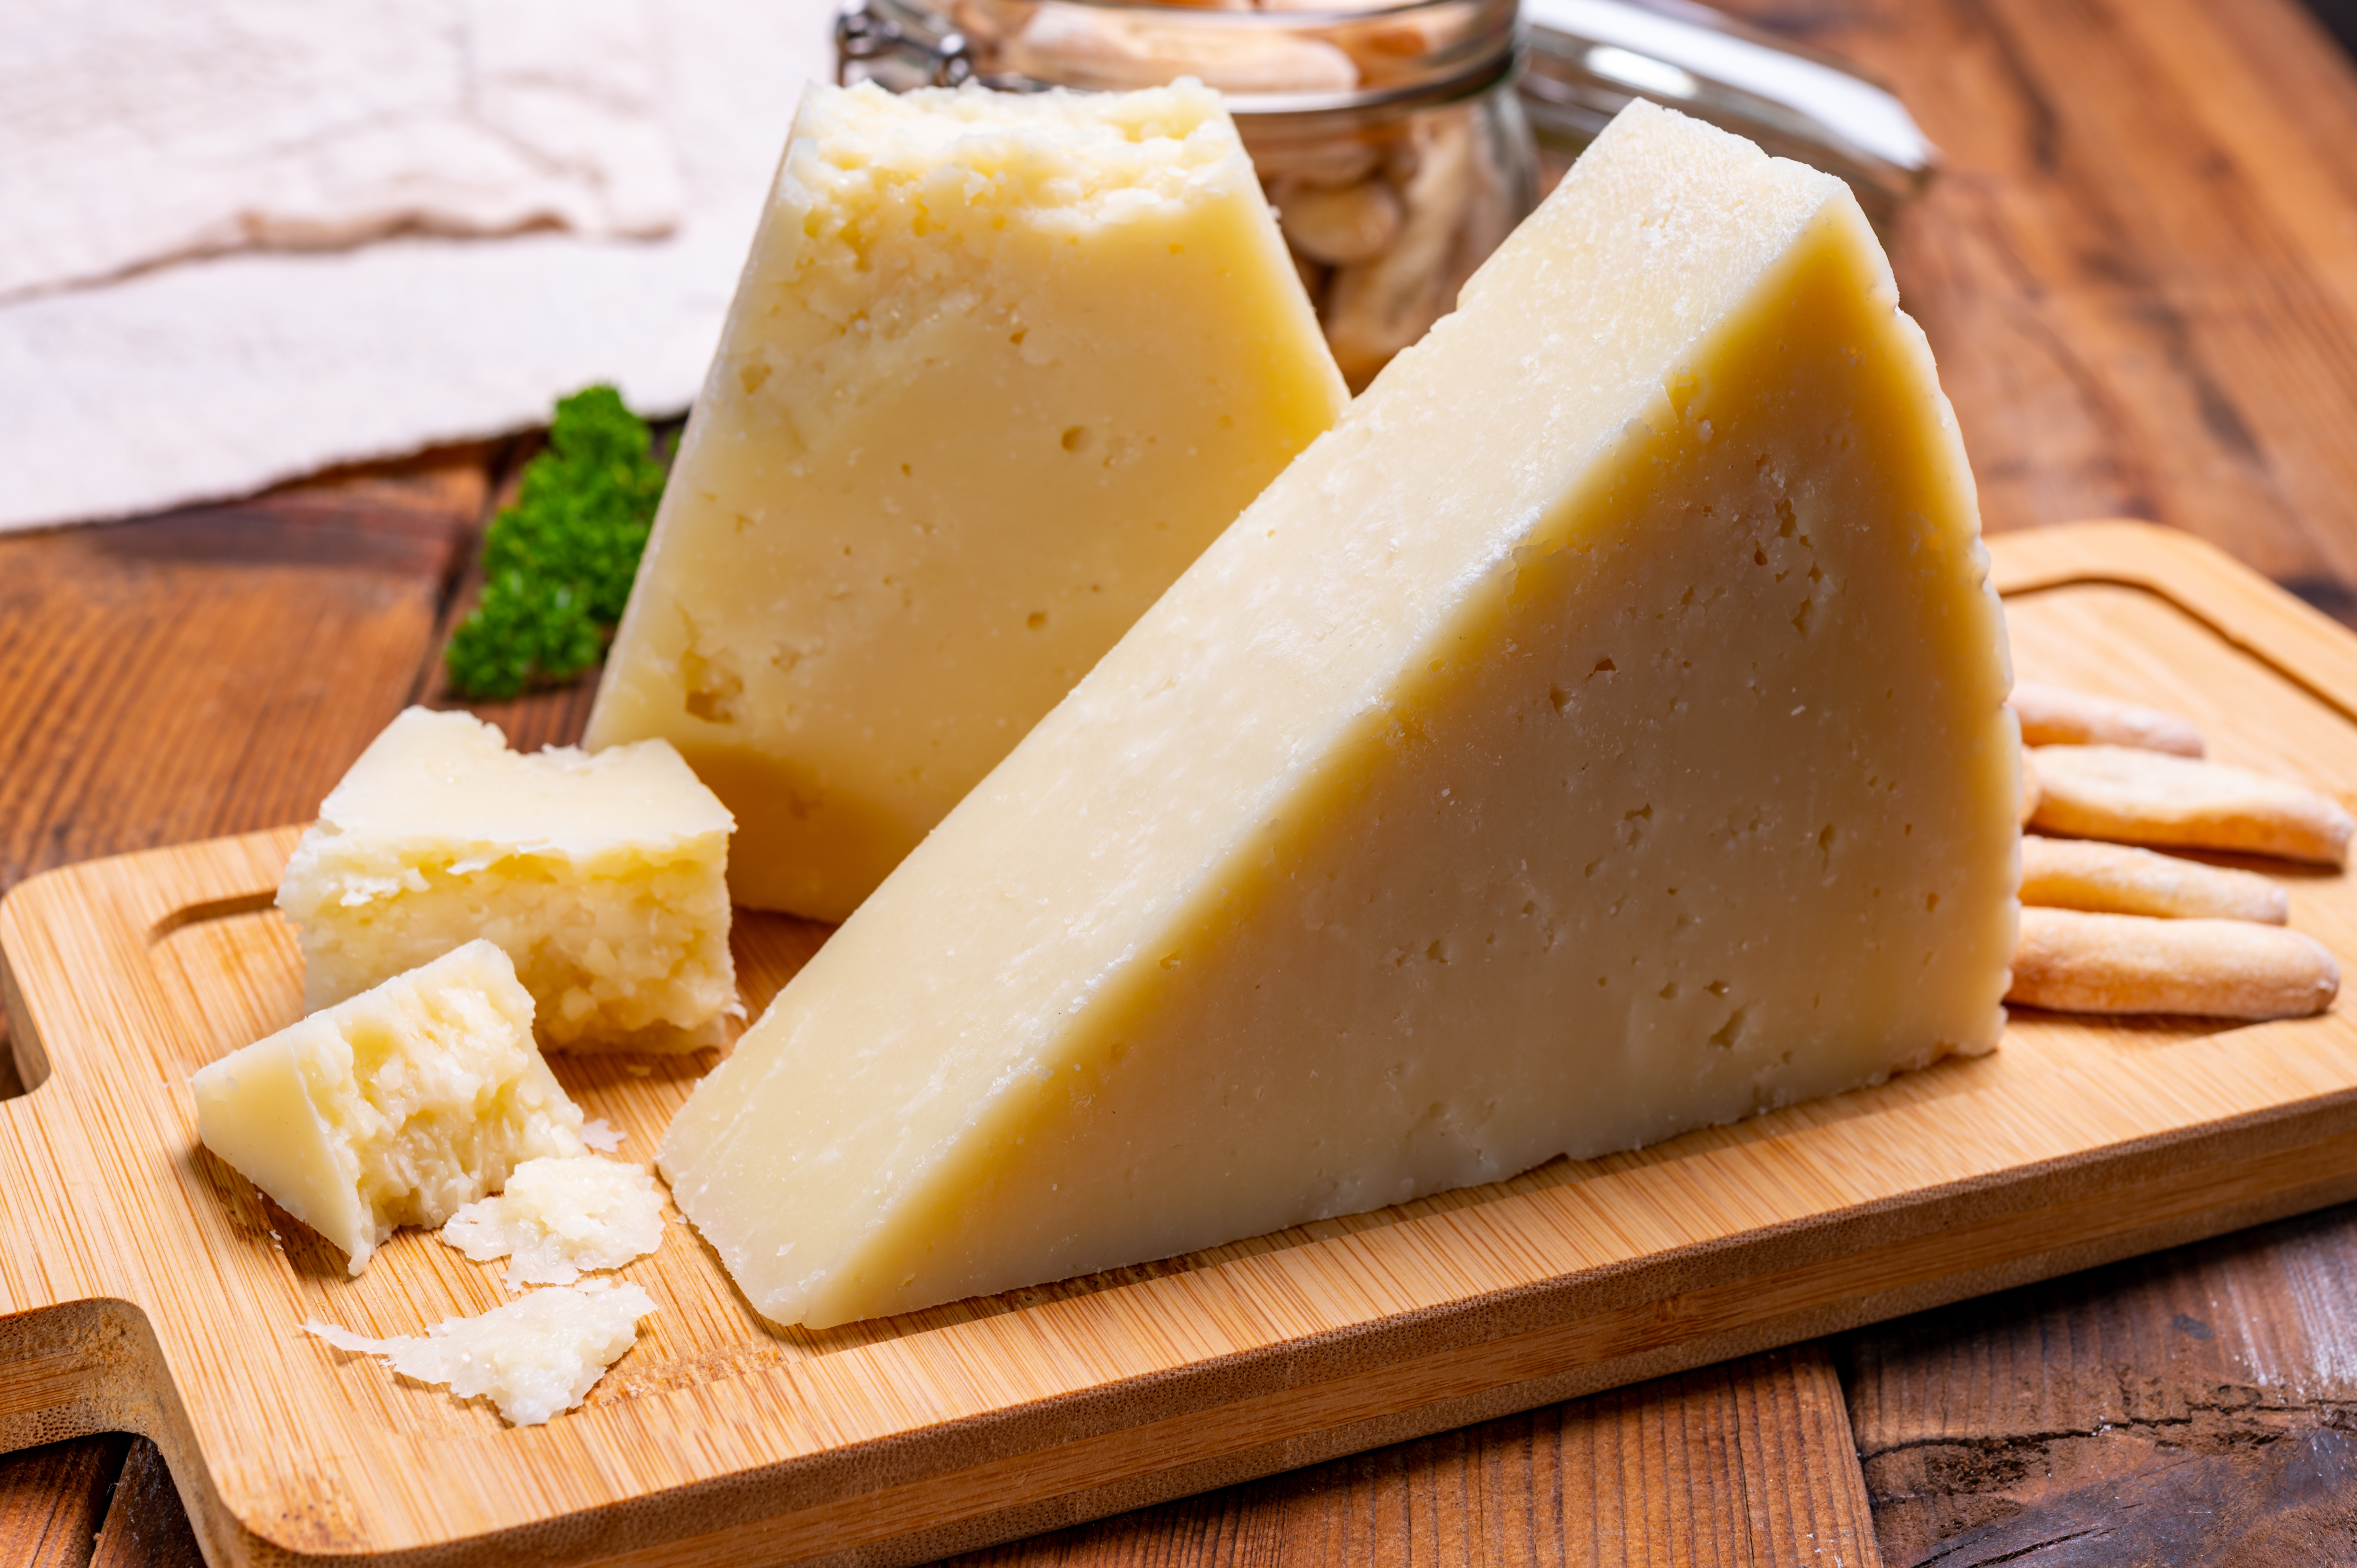 example of hard cheese